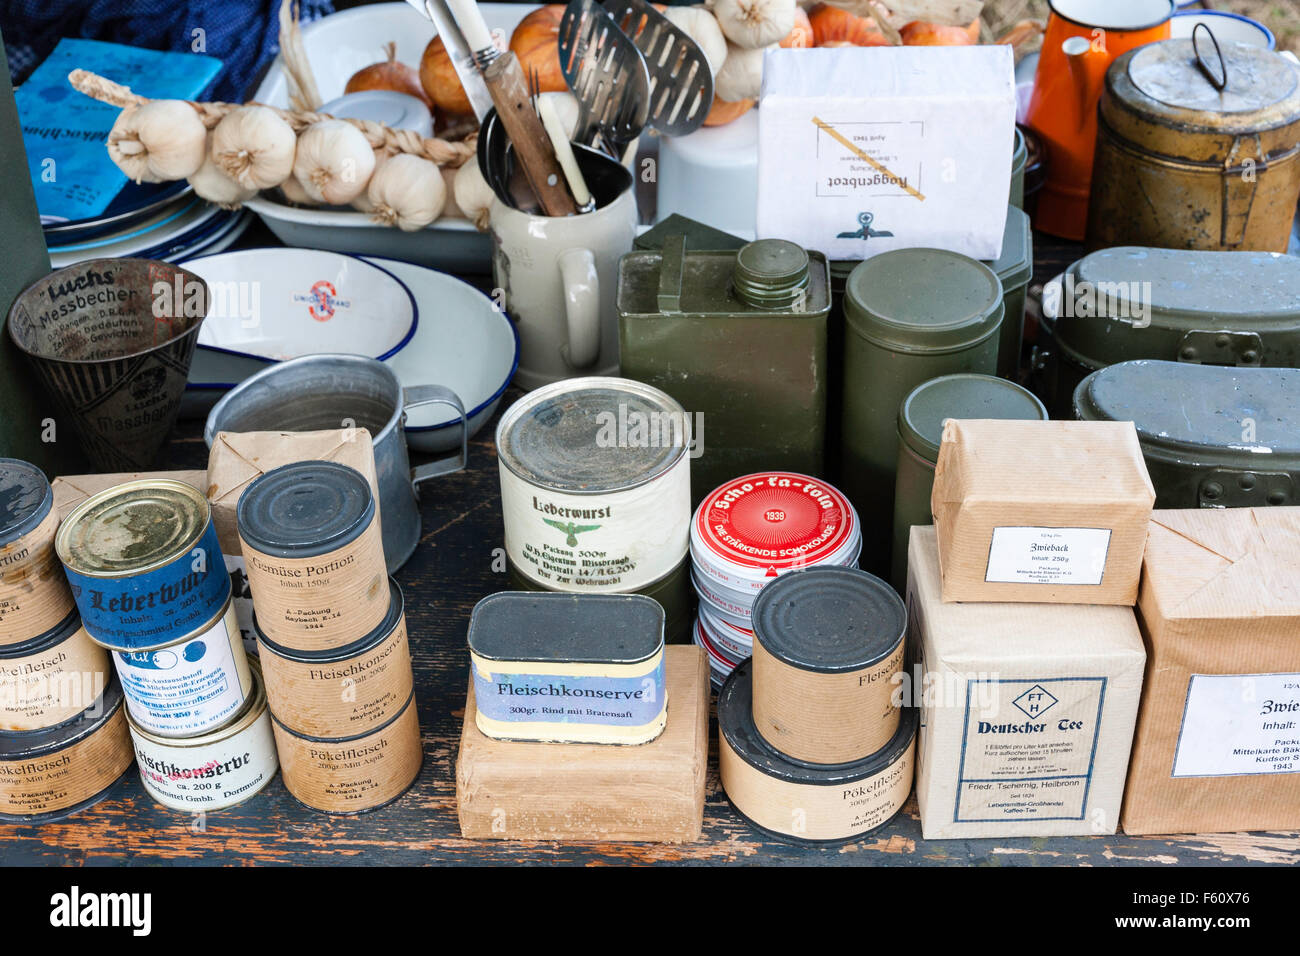 World war two re-enactment. Display of German food field supplies, packets and cans stacked with army labels on. - Stock Image